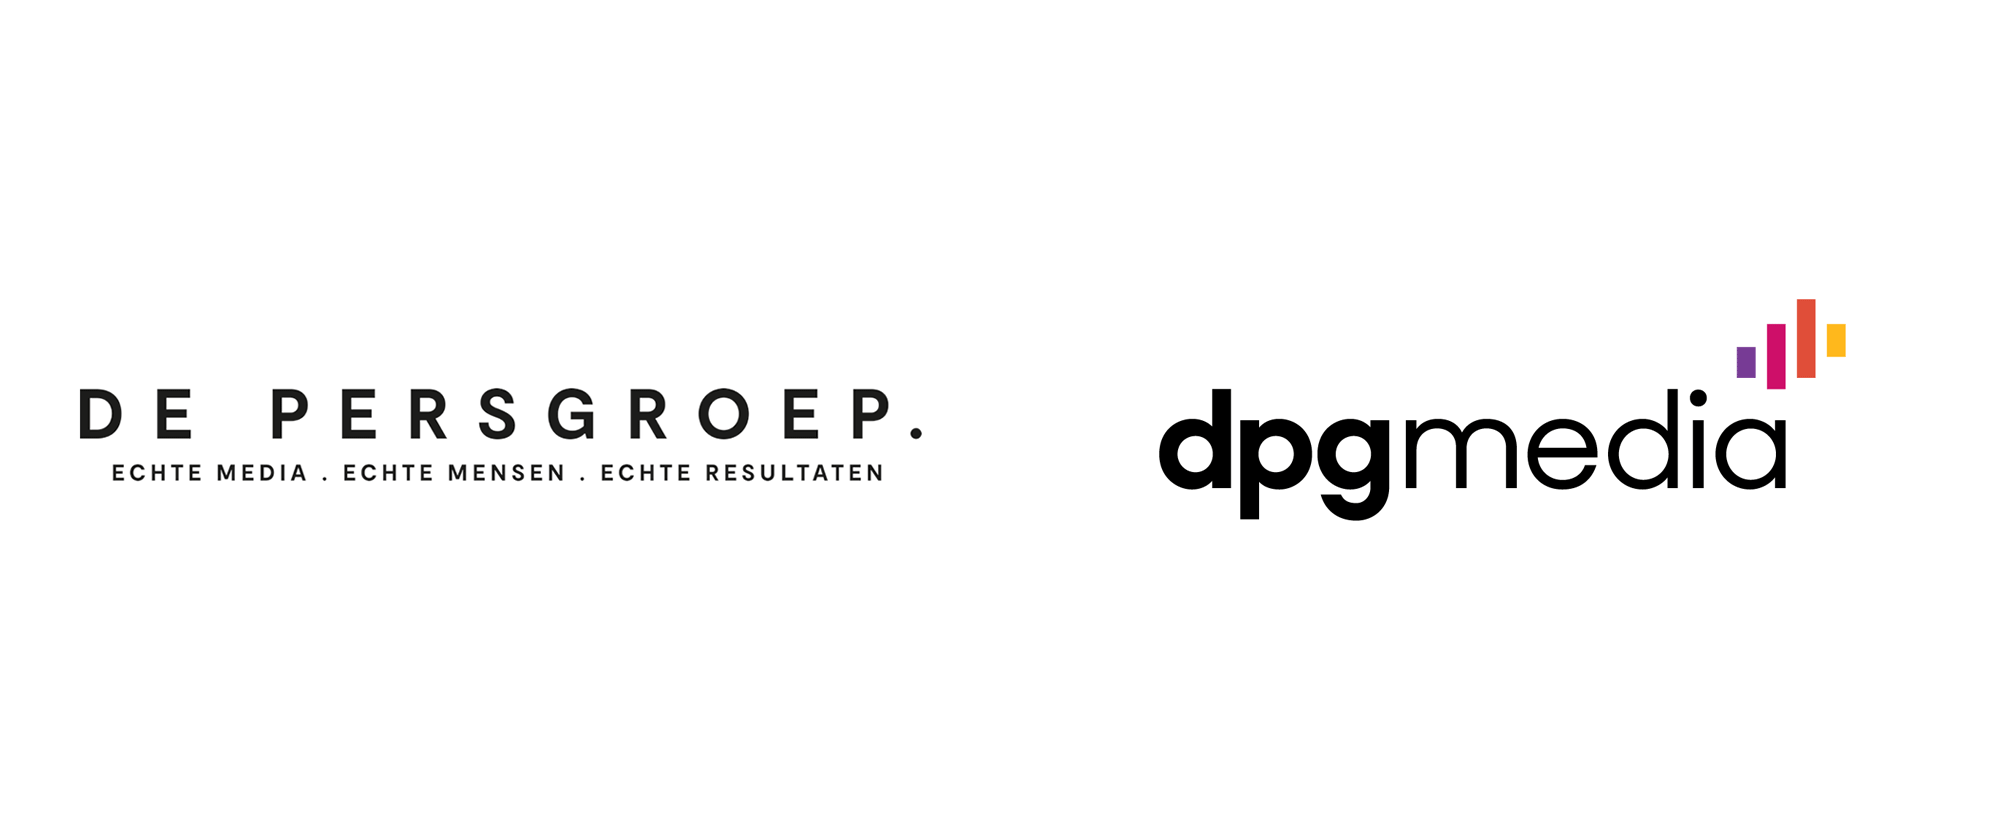 New Name and Logo for DPG Media